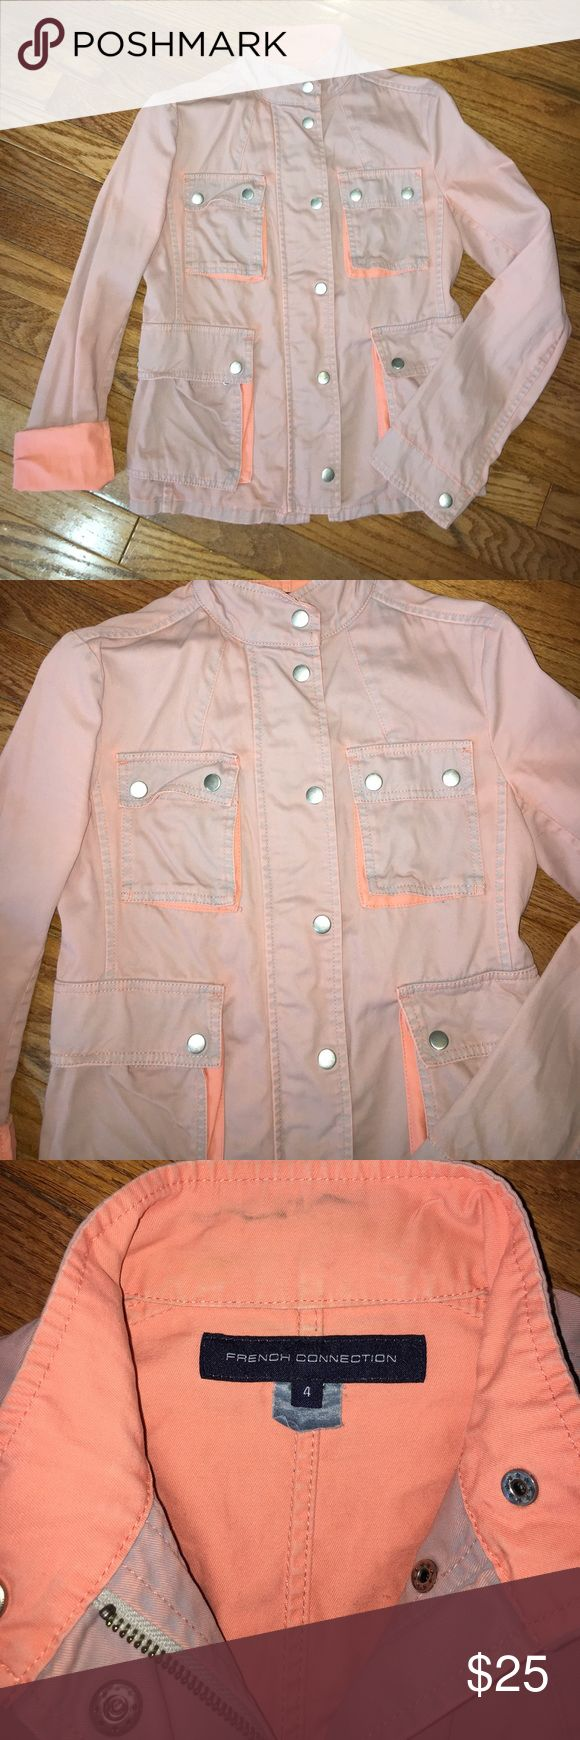 "French connection pink utility jacket Dusty rose utility jacket with pops of salmon behind the pockets and when the sleeves are rolled up. . 17.5"" laying flat from armpit to armpit. Collar can be worn popped up or folded down flat. Slight discoloration at the neck (pictured). Coat zipped up and has added snap buttons. Great piece to take into spring/summer. French Connection Jackets & Coats Utility Jackets"